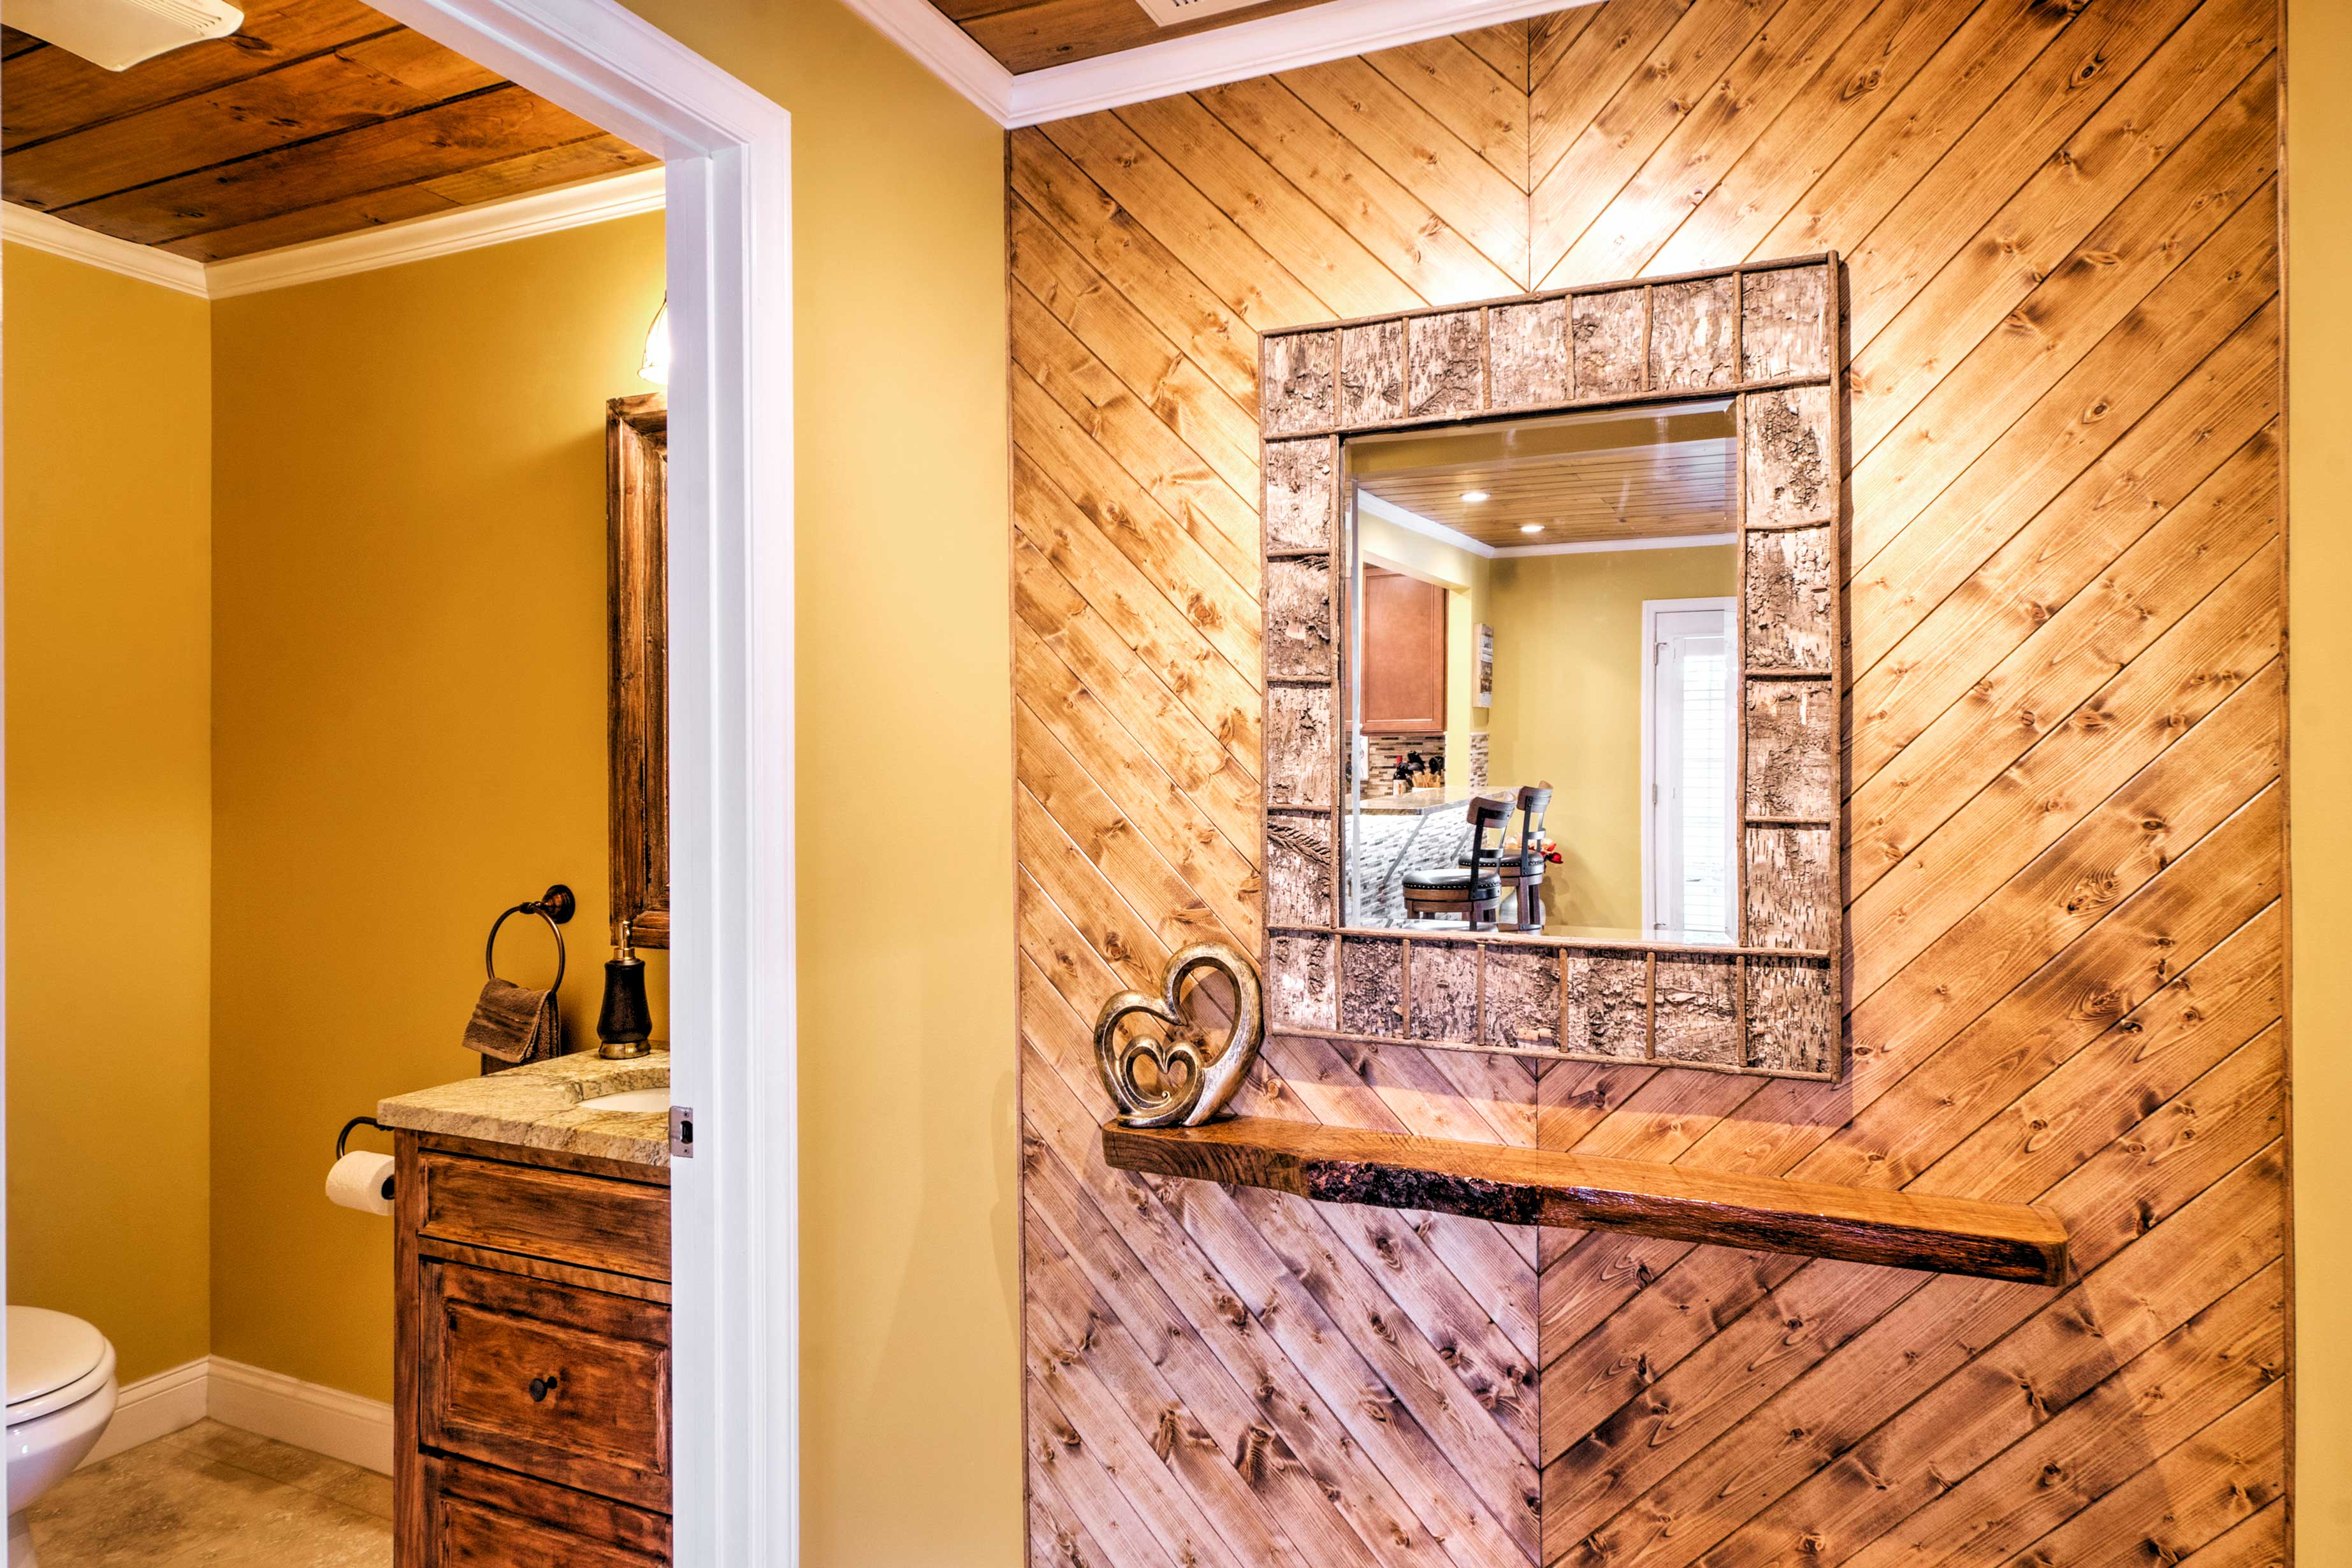 Rustic decor evokes a peaceful ambiance throughout the home.